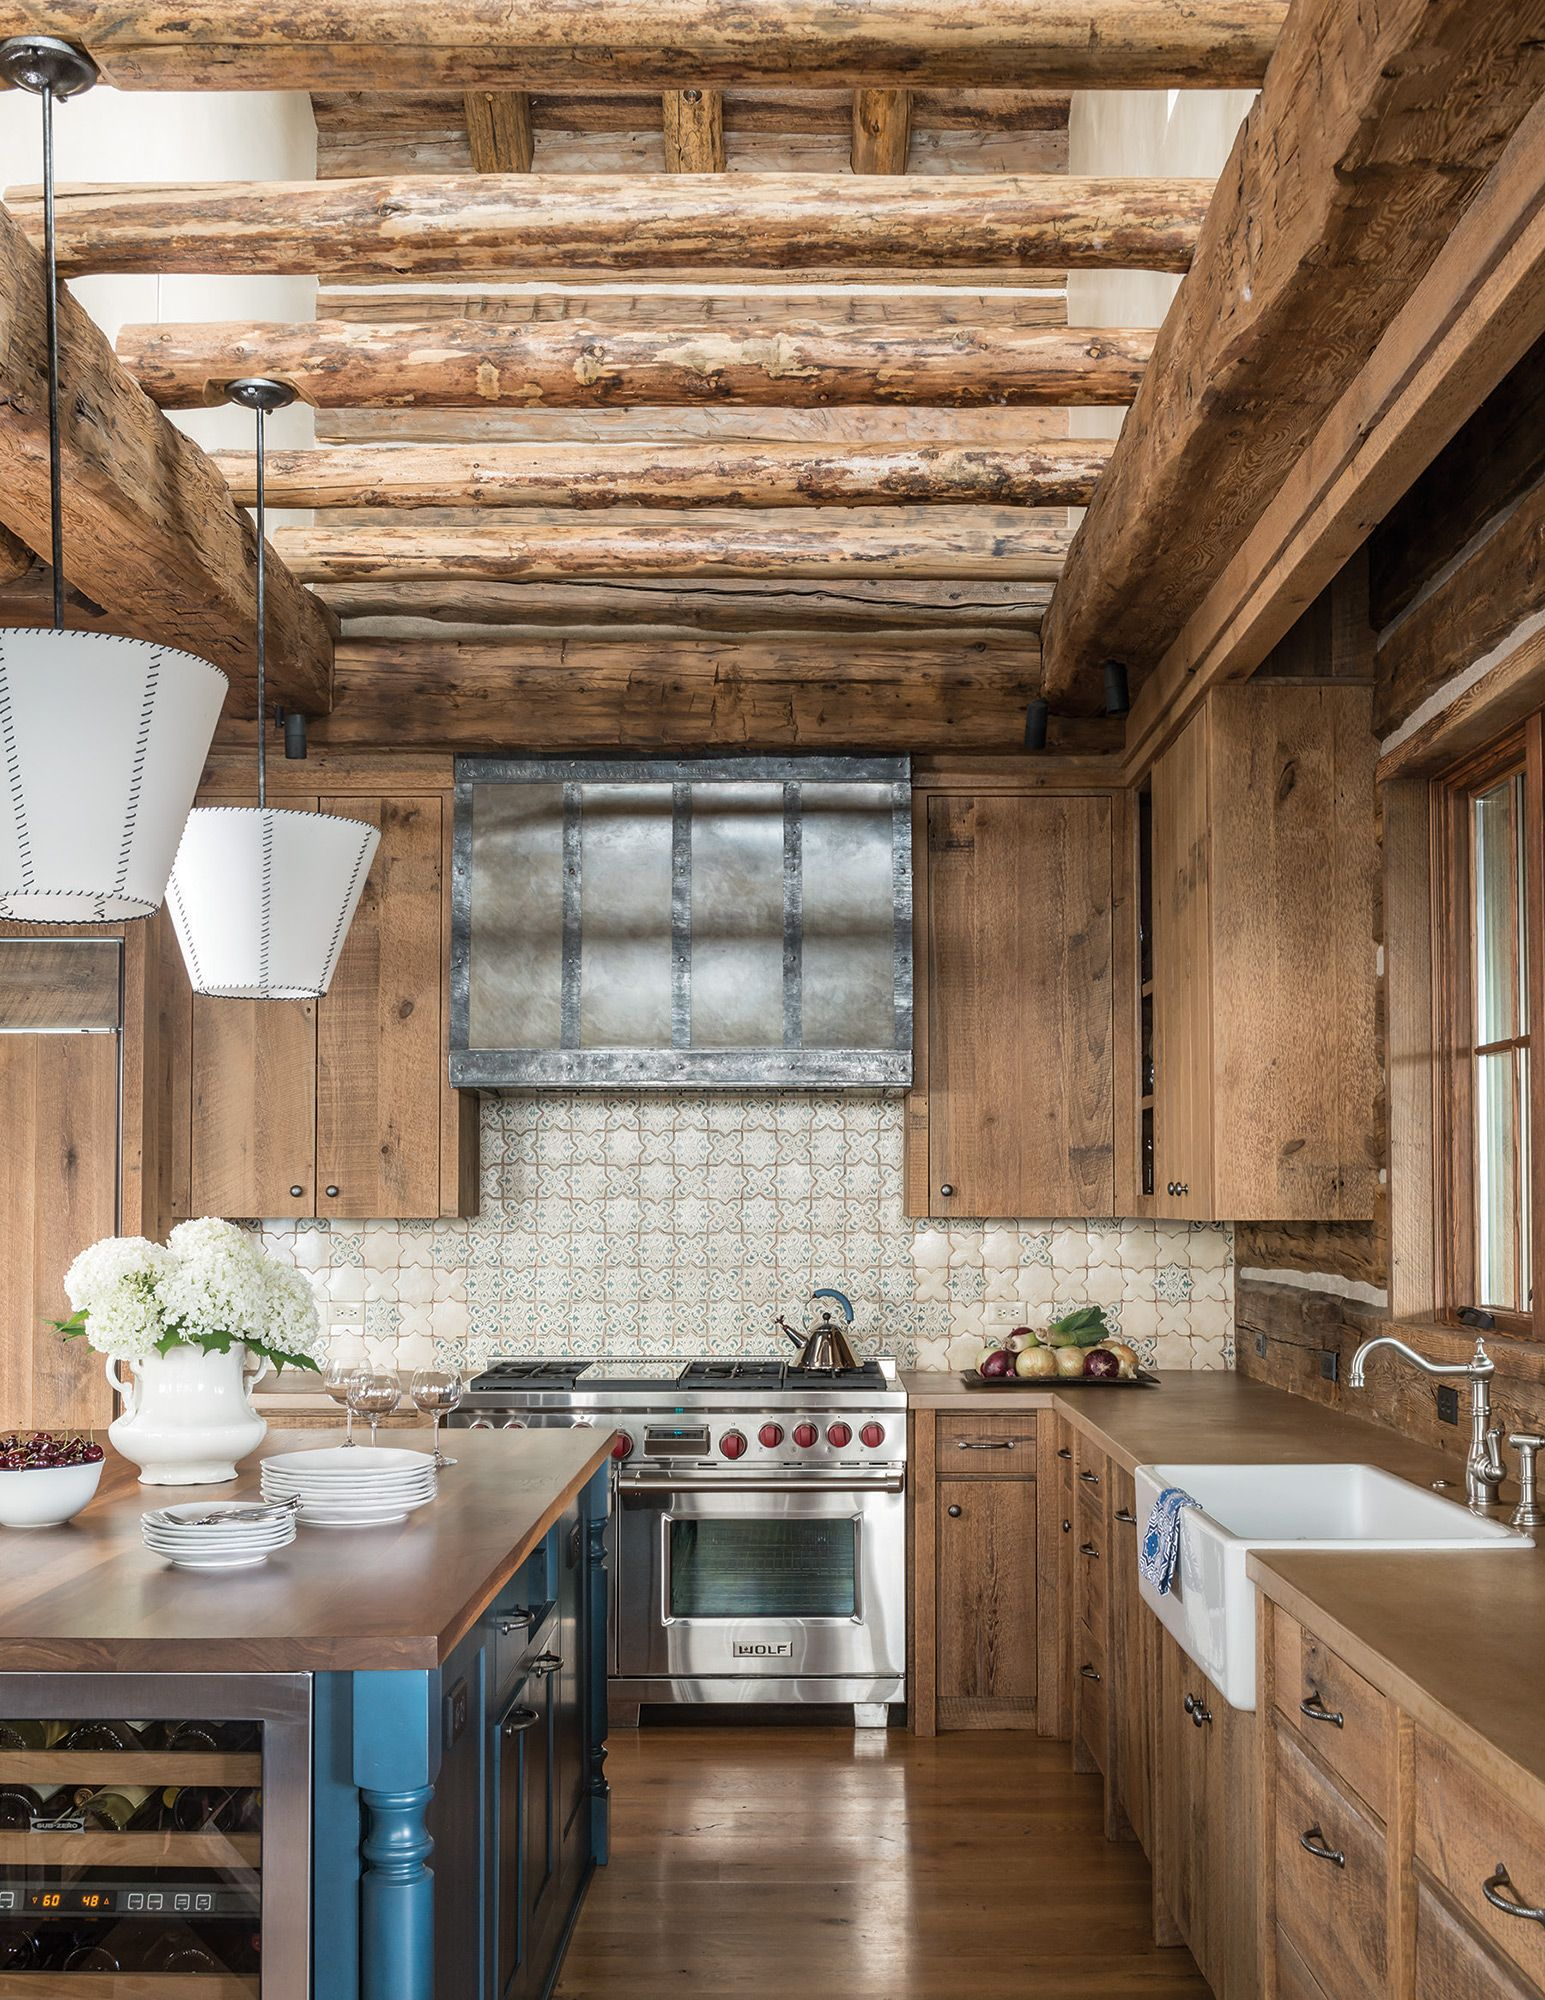 Big Sky Journal - The kitchen isbathed in natural light,even on a ...